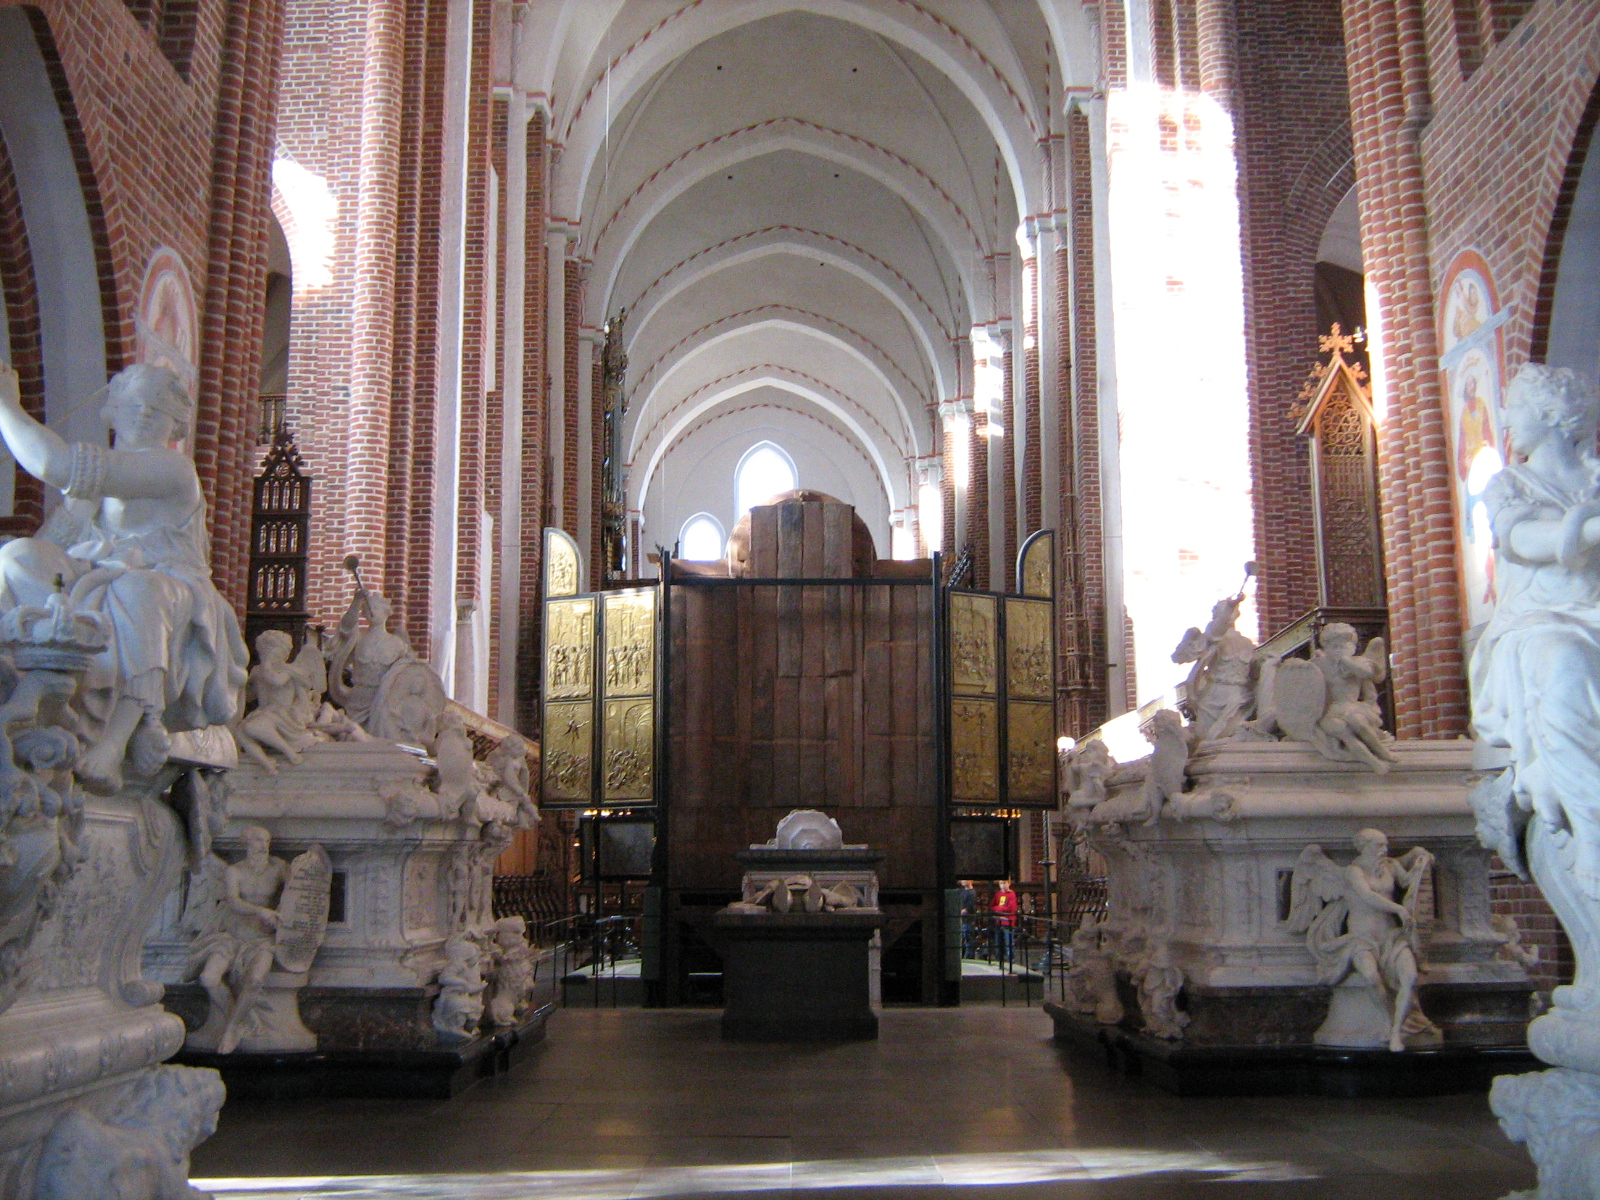 Roskilde Cathedral, Denmark, Europe, Interior view